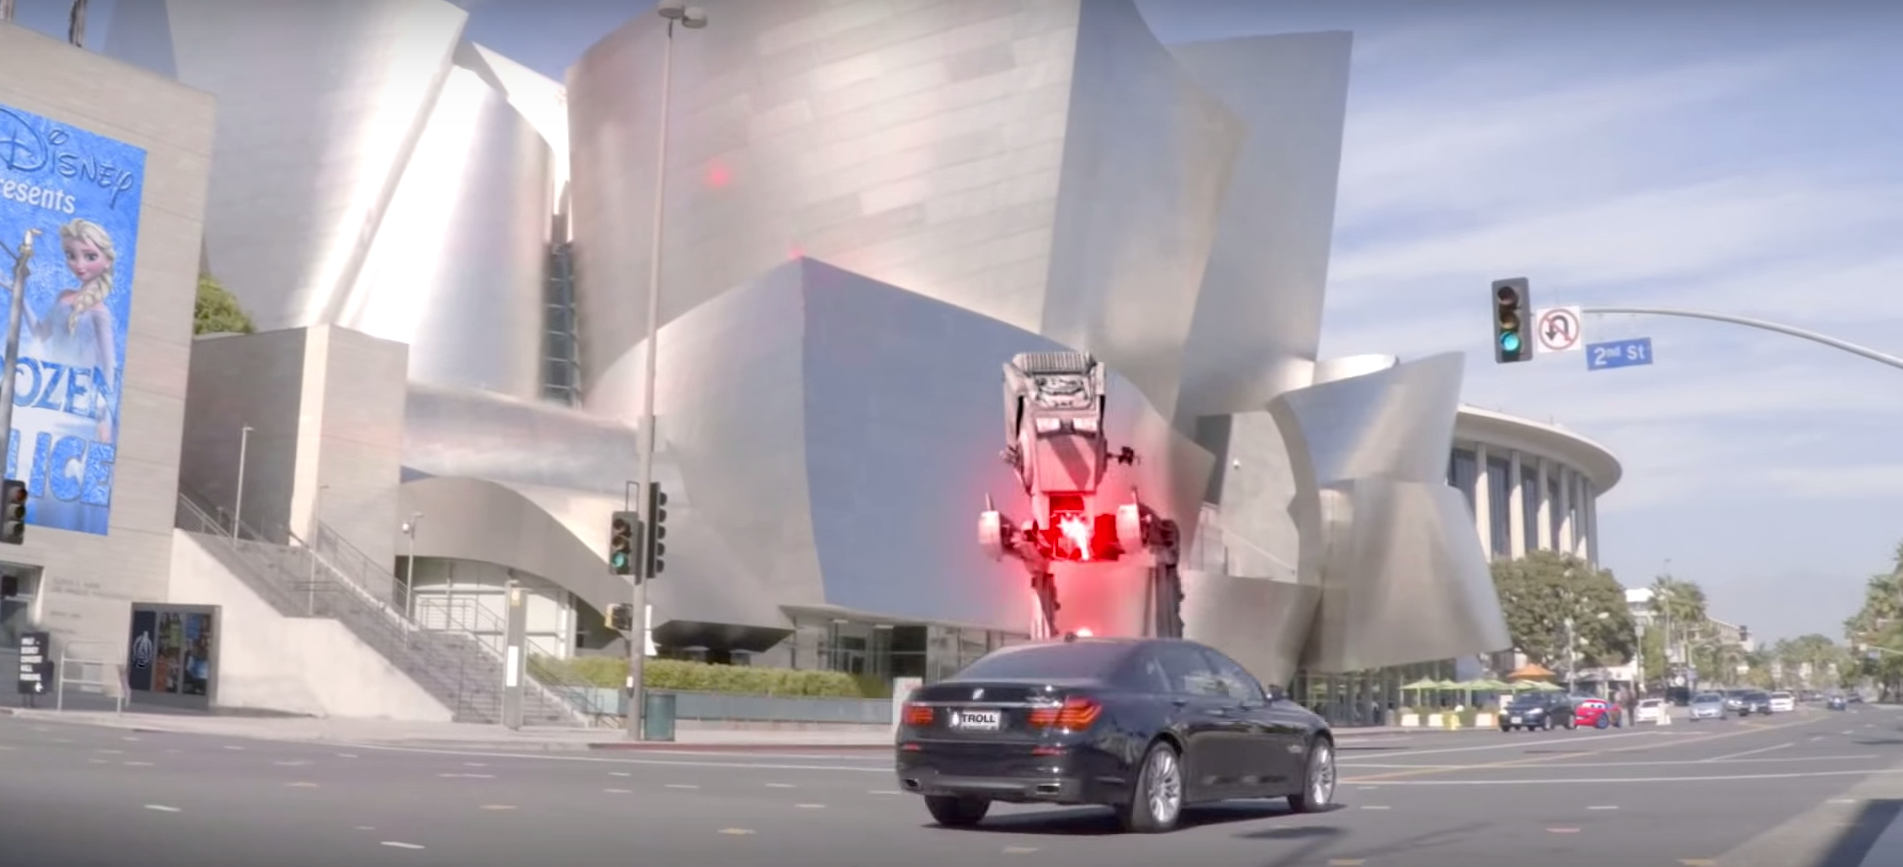 Here's What An Imperial Invasion Of LA Would Look Like